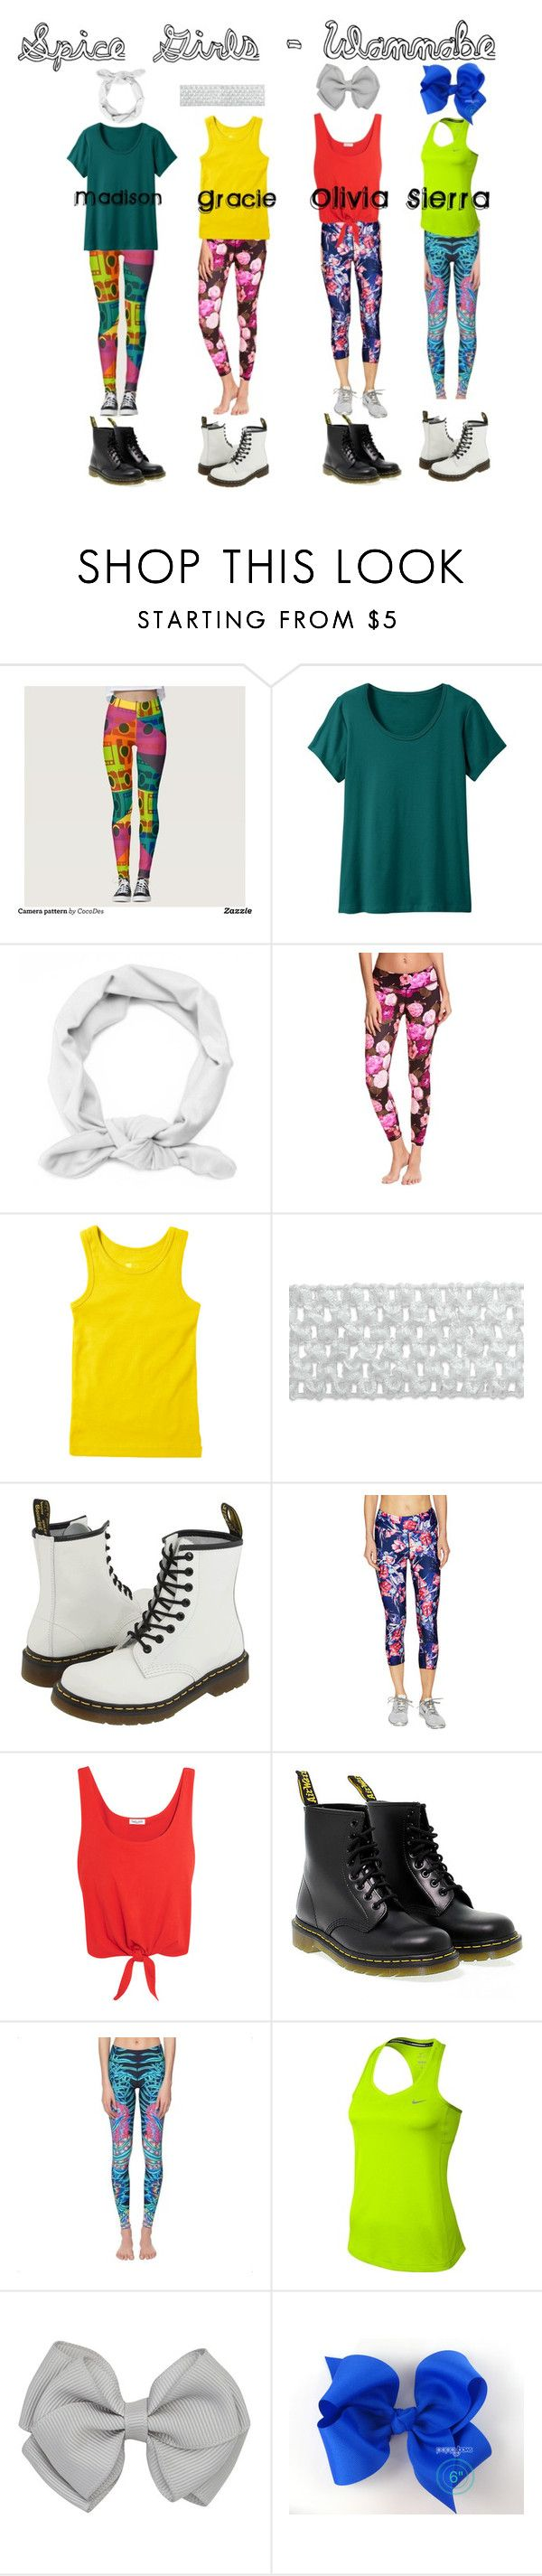 Wannabe - Haschak Sisters by treefrogmadeline on Polyvore featuring TravelSmith, Splendid, We Are Handsome, Betsey Johnson, Mara Hoffman, NIKE and Dr. Martens